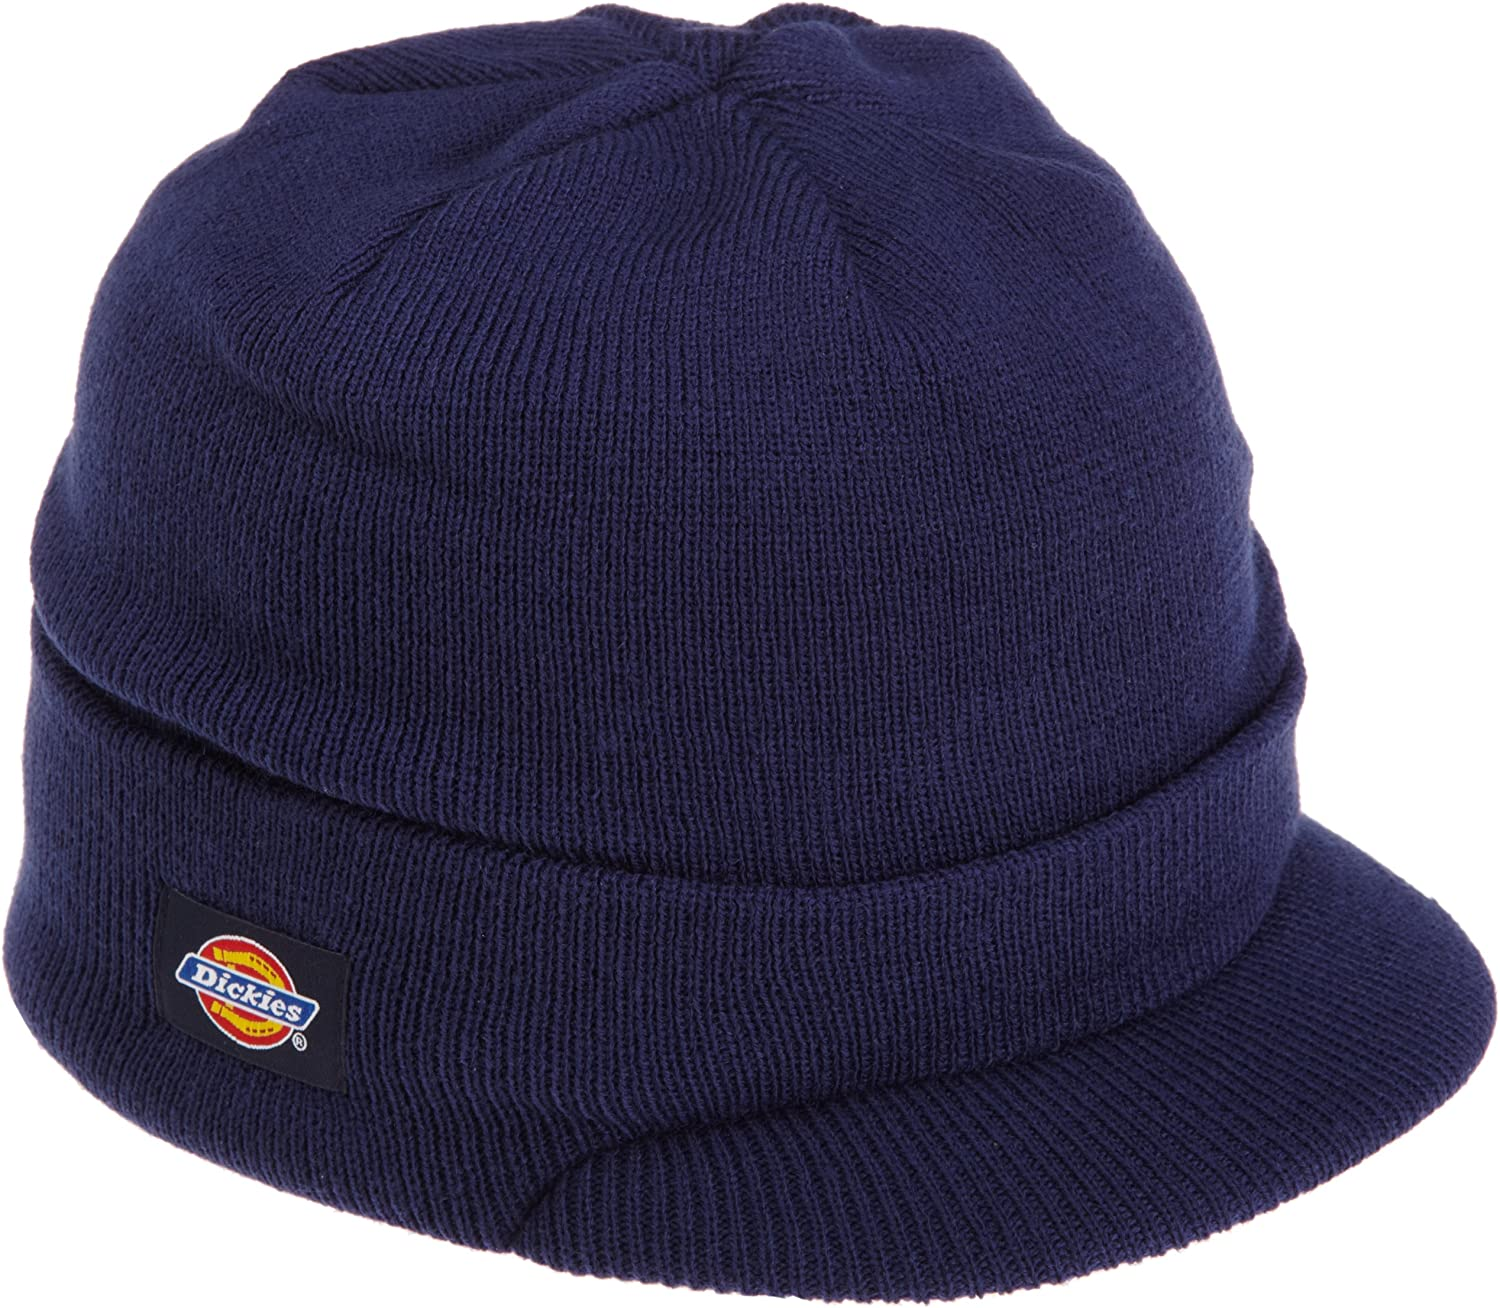 Dickies Core 874 Navy Billed Knit Beanie with Visor: Amazon.es ...